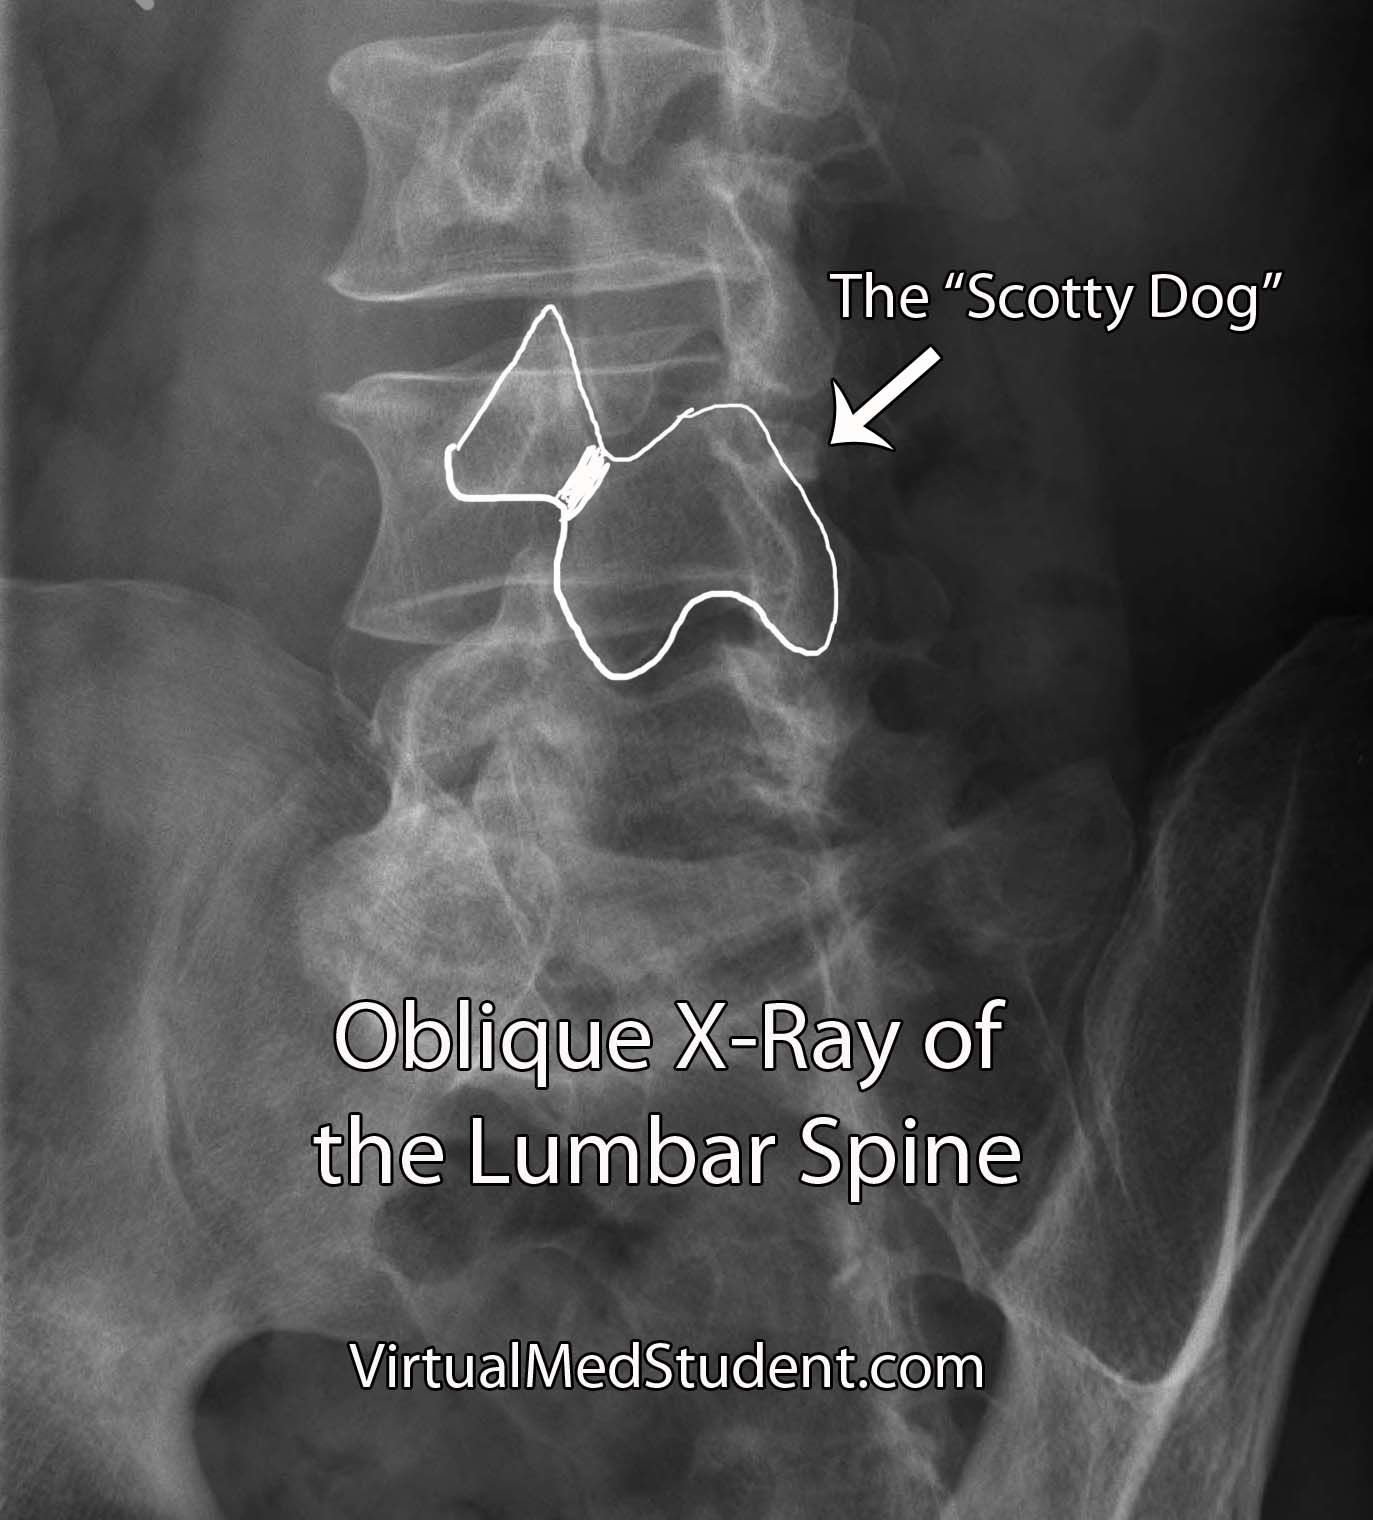 Xray Scotty Dog | radiology | Pinterest | Radiology, Rad tech and ...